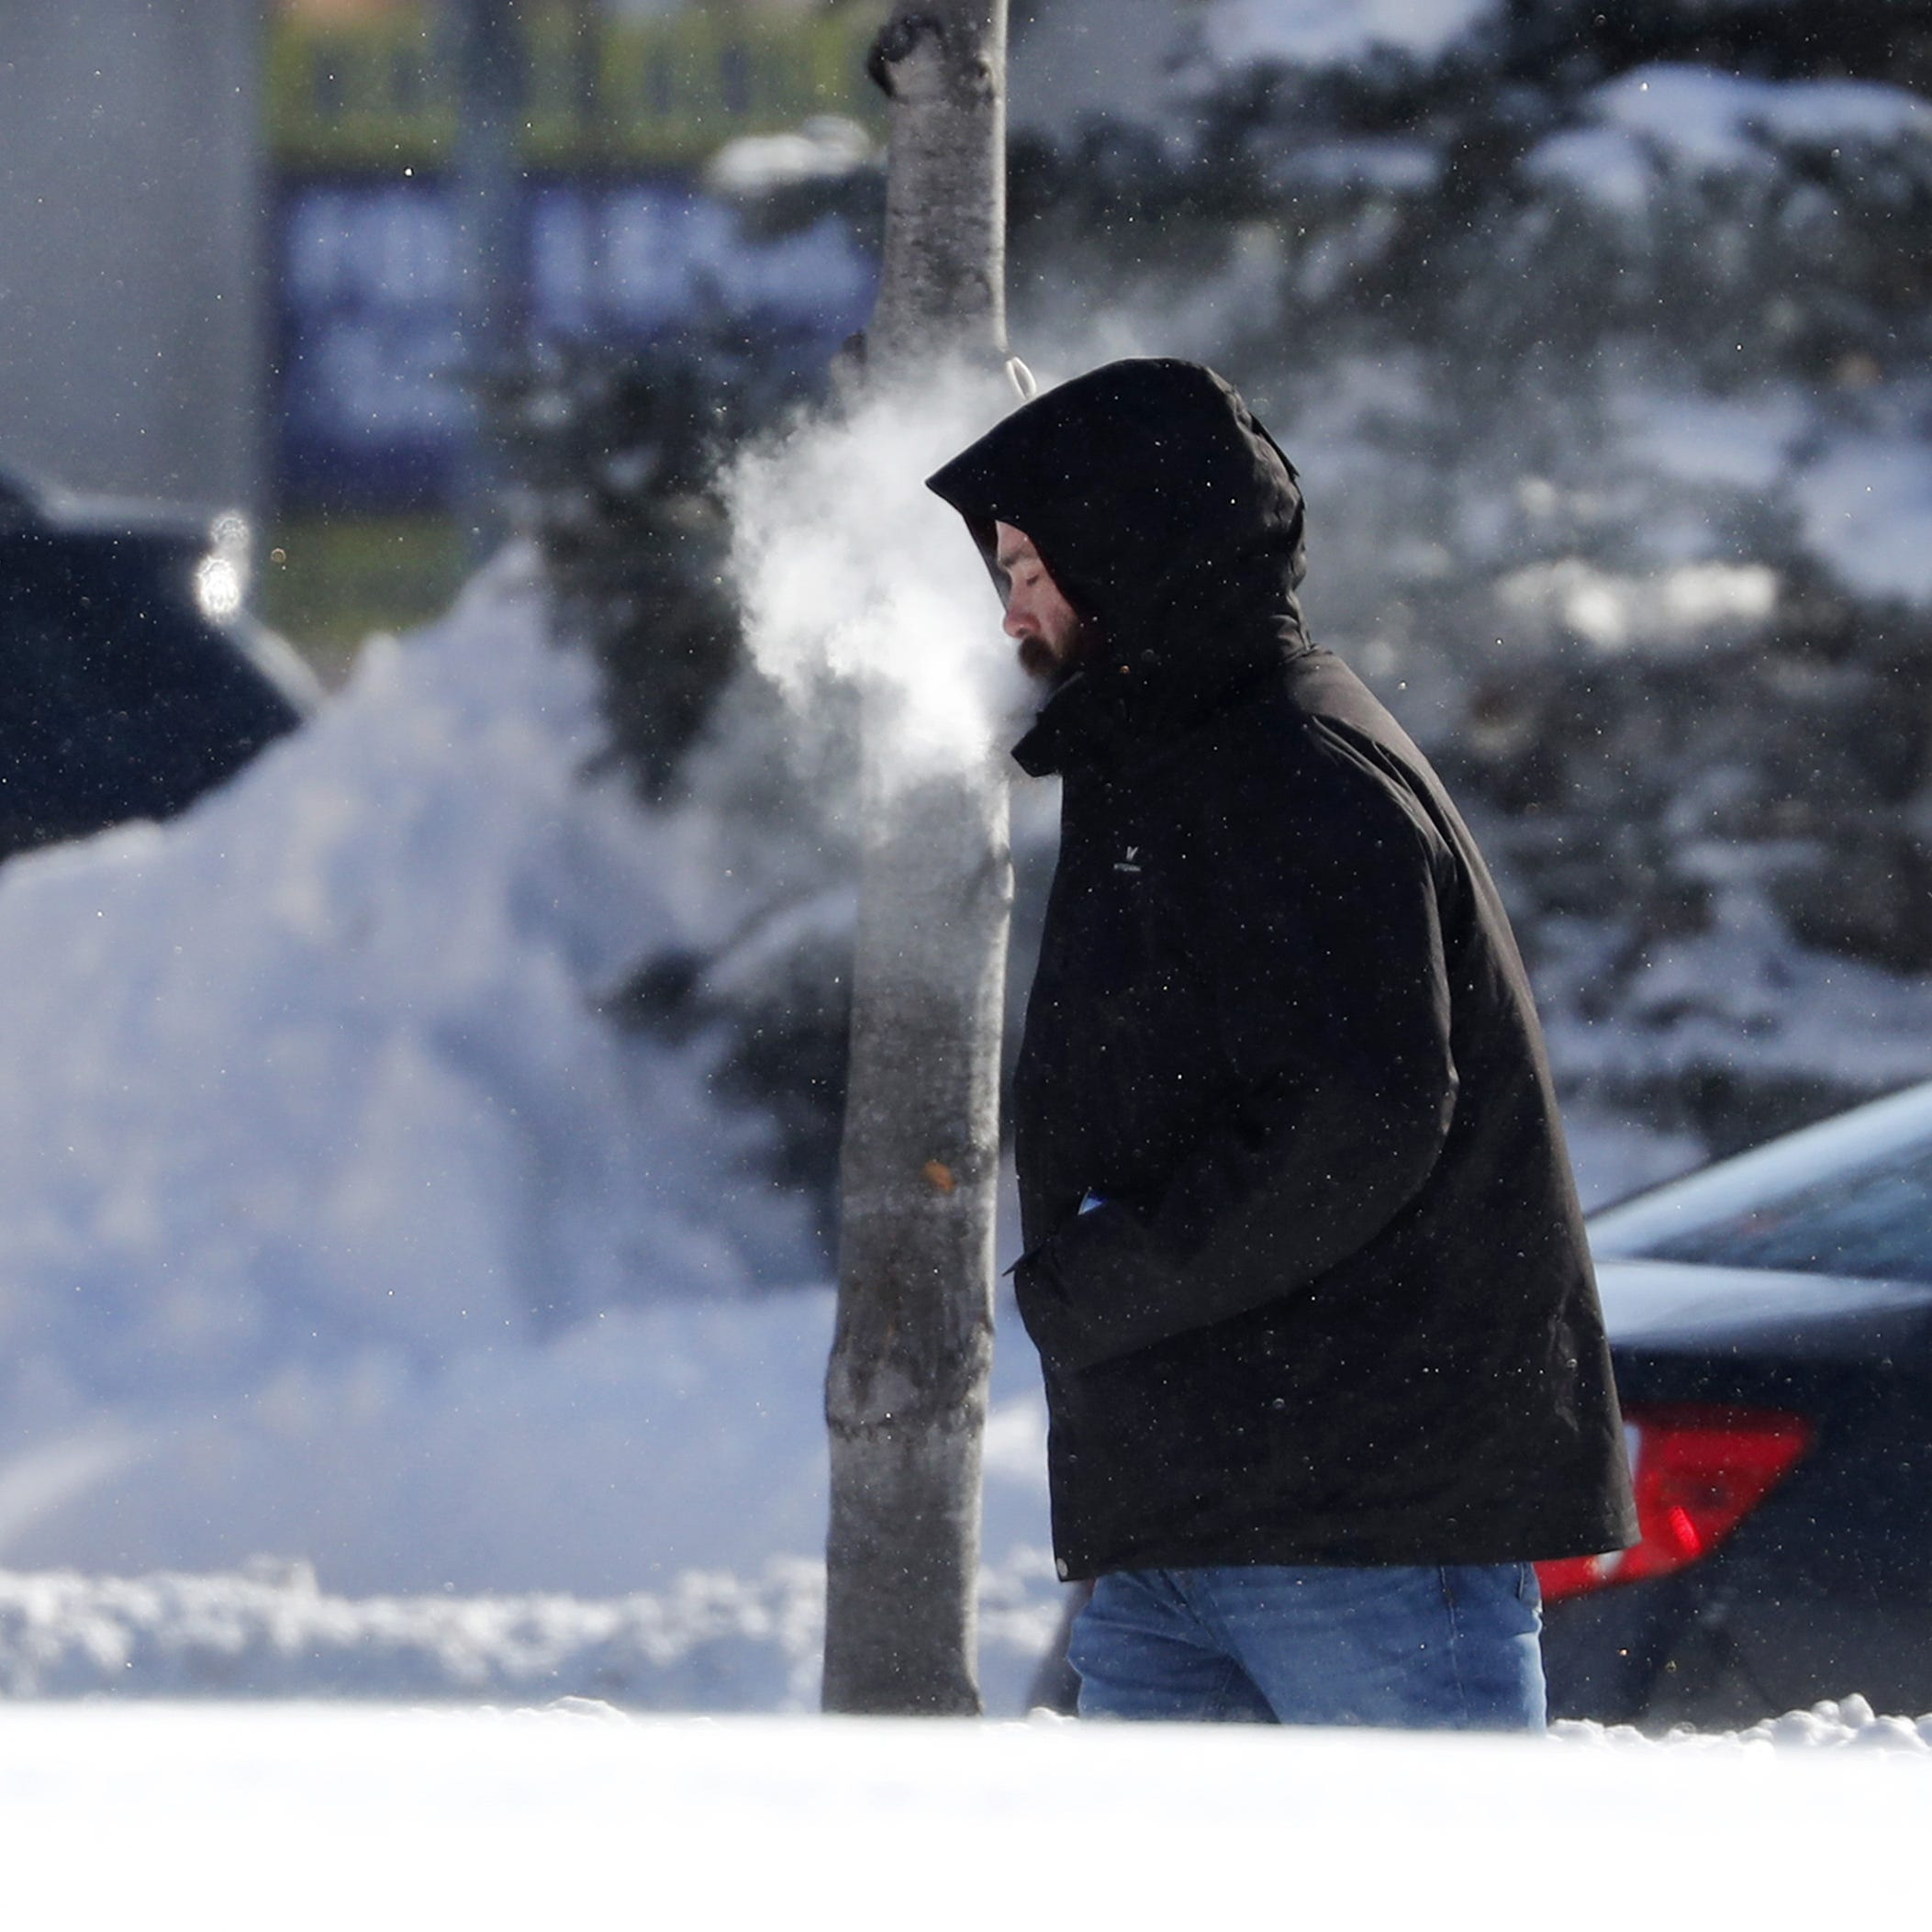 What kind of extreme cold weather does it take for Oshkosh schools to close?